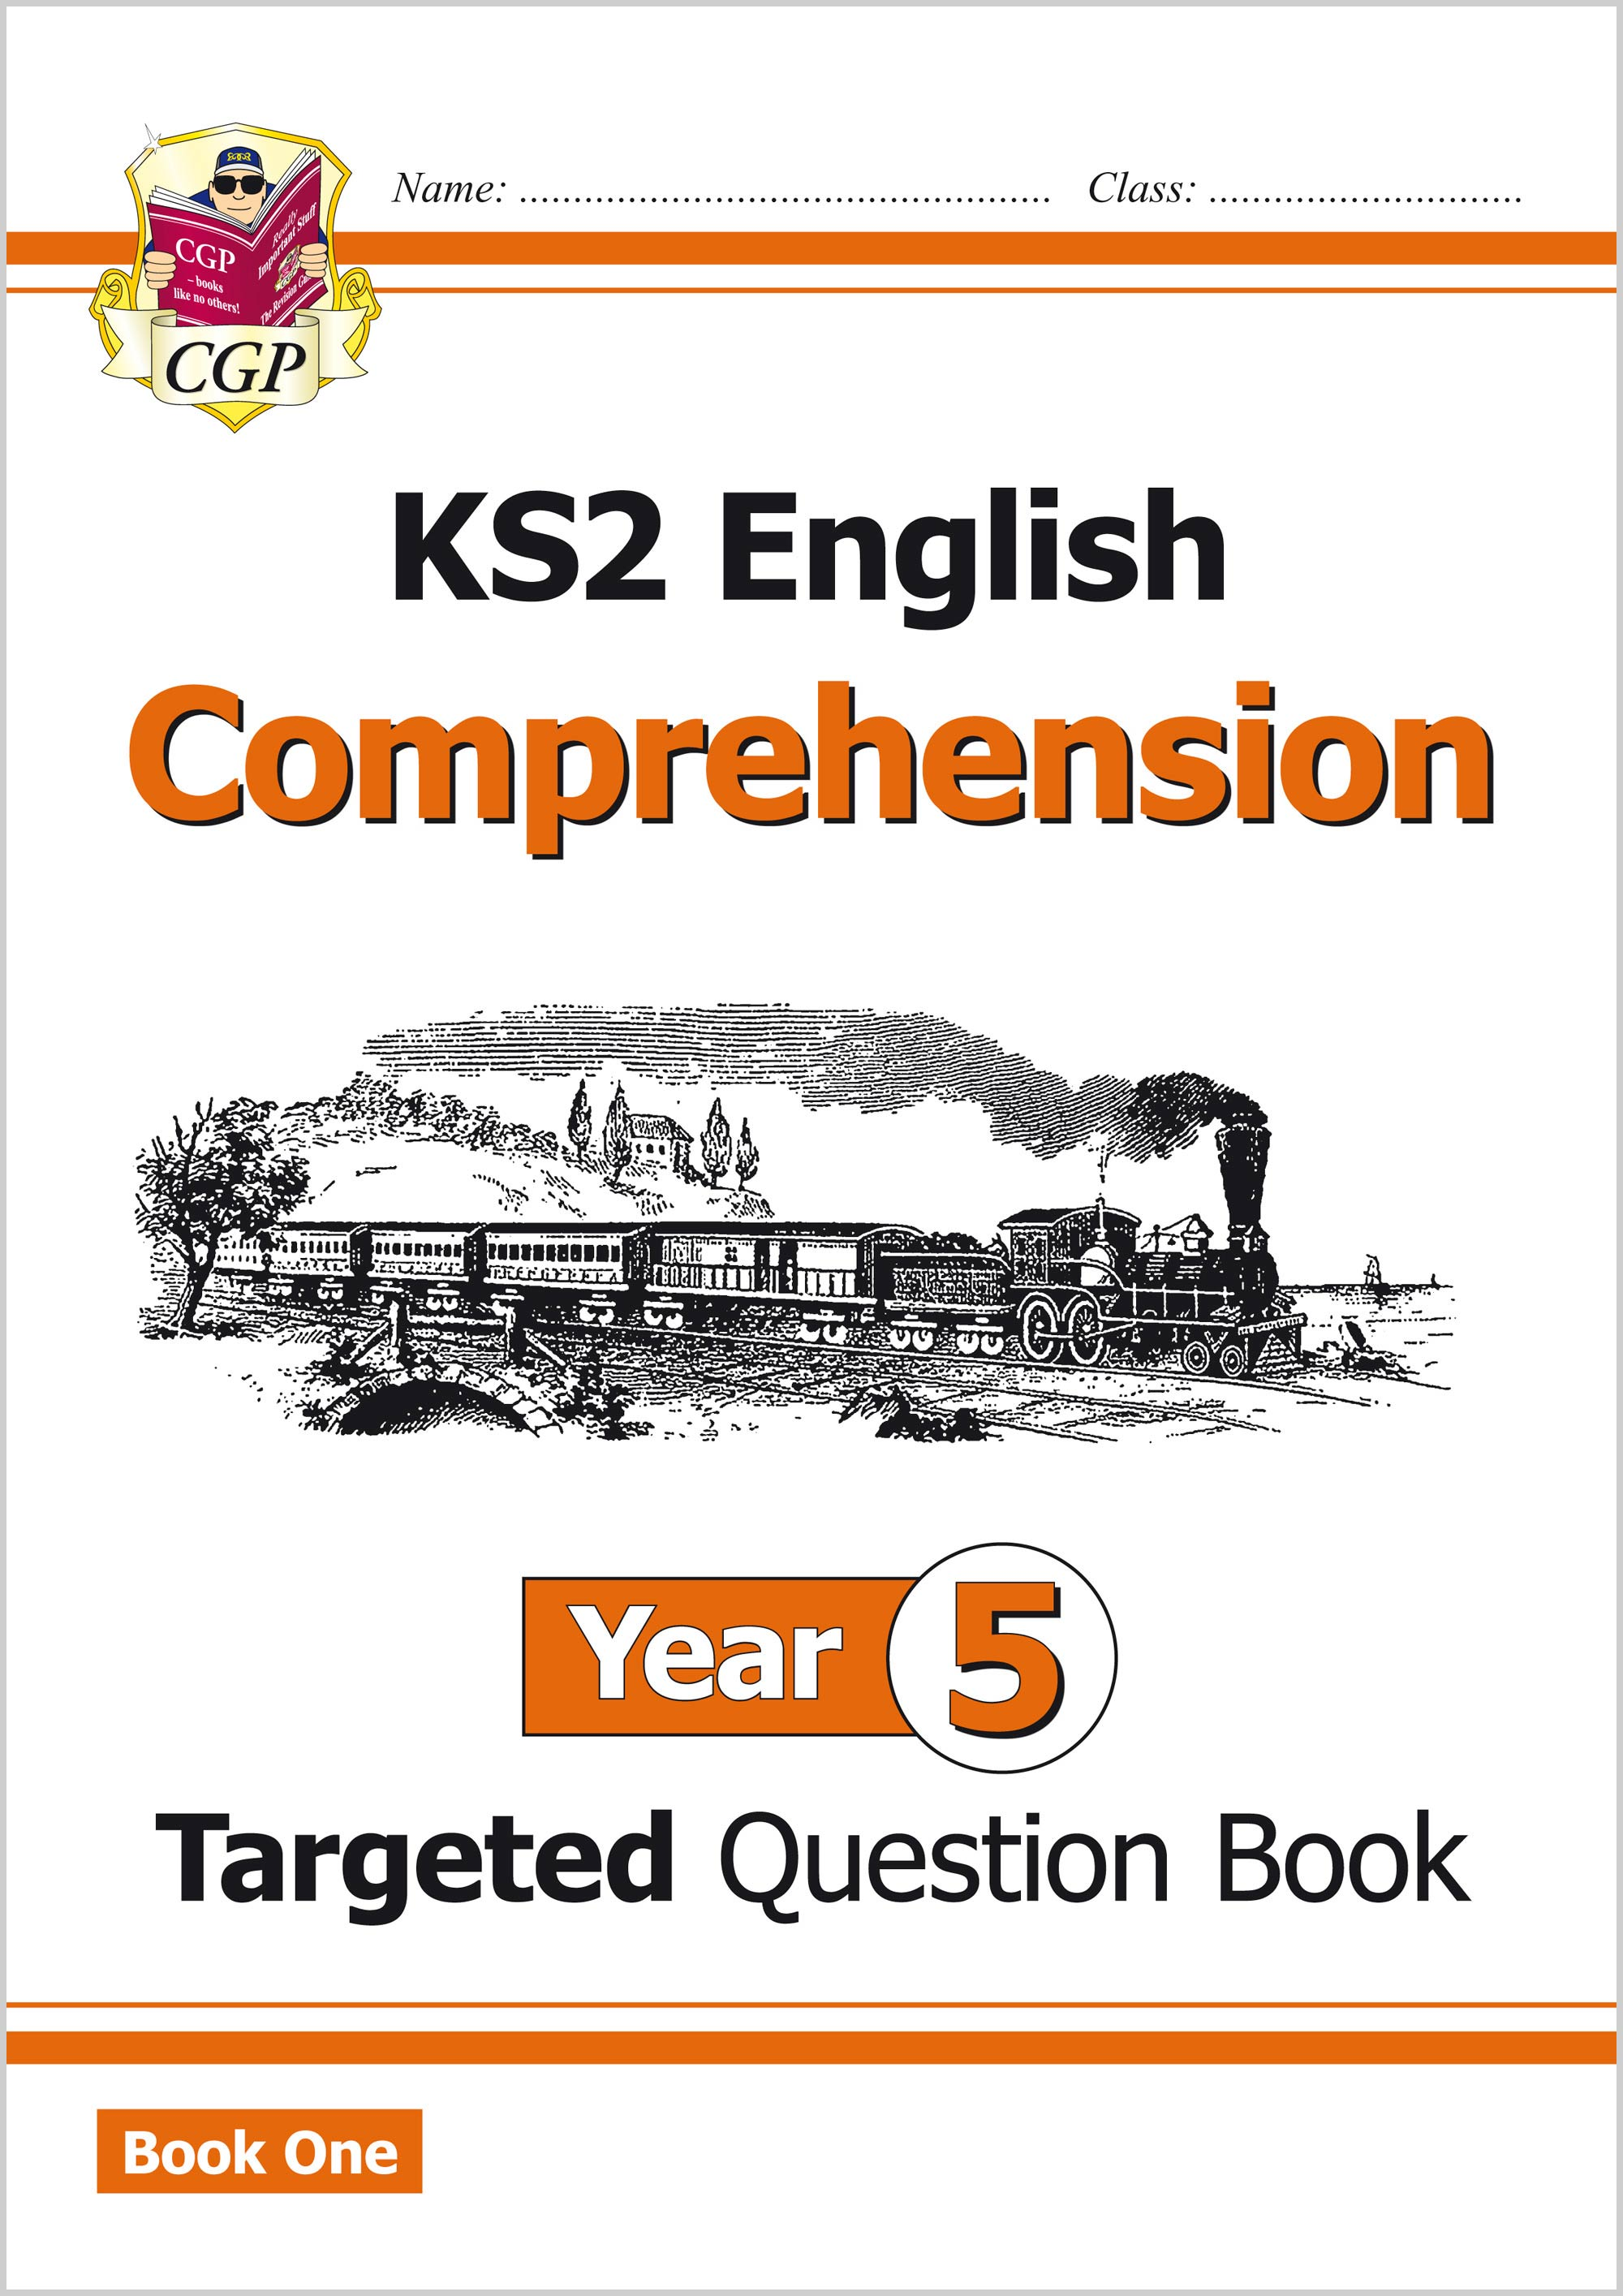 E5CW21 - New KS2 English Targeted Question Book: Year 5 Comprehension - Book 1